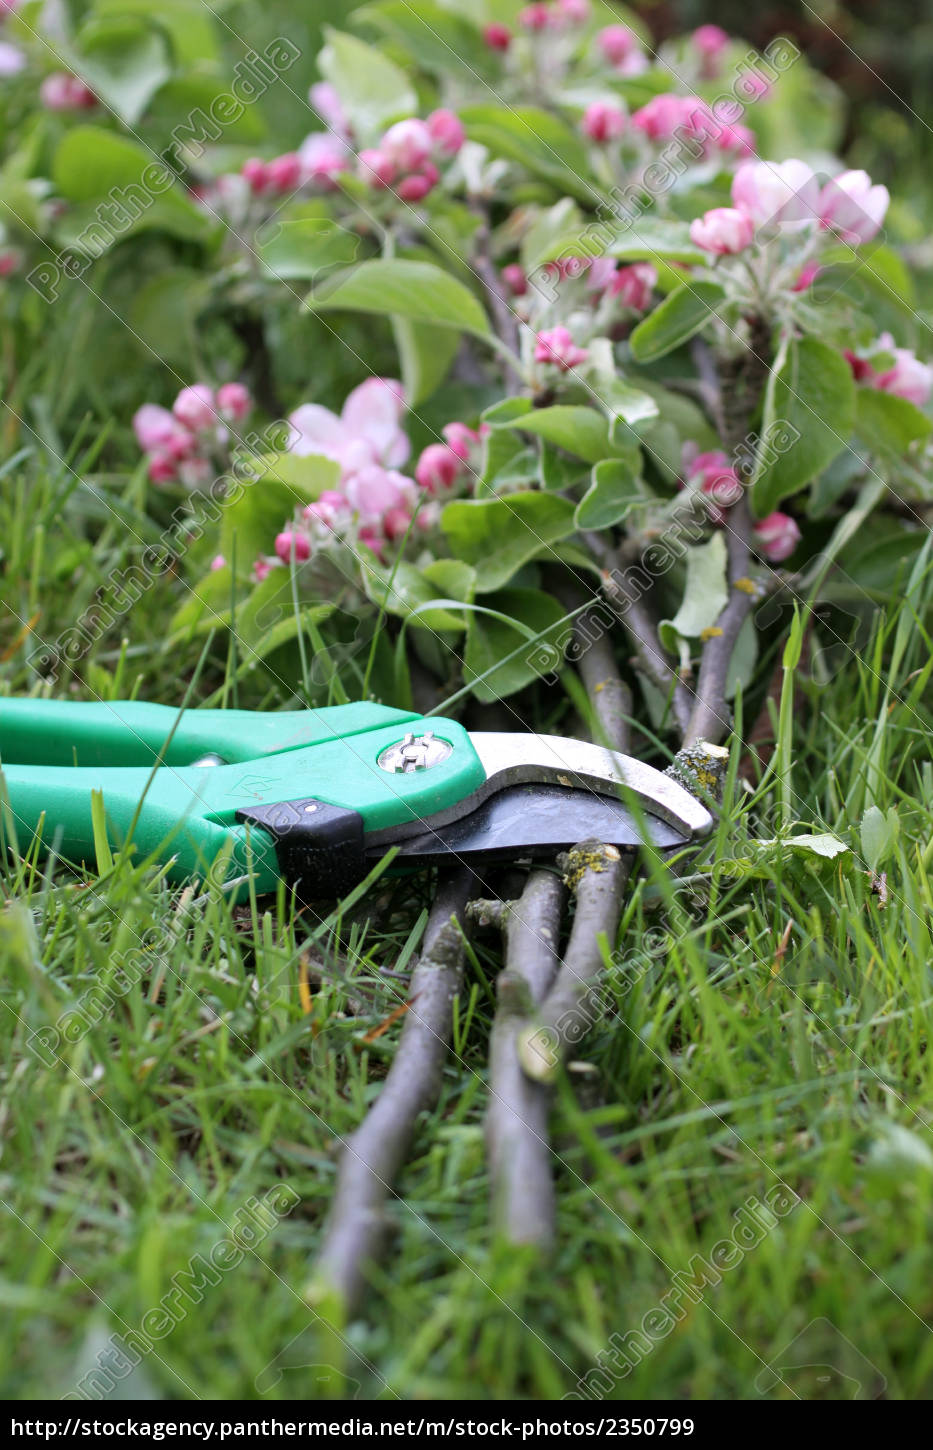 garden, shears, with, branches - 2350799